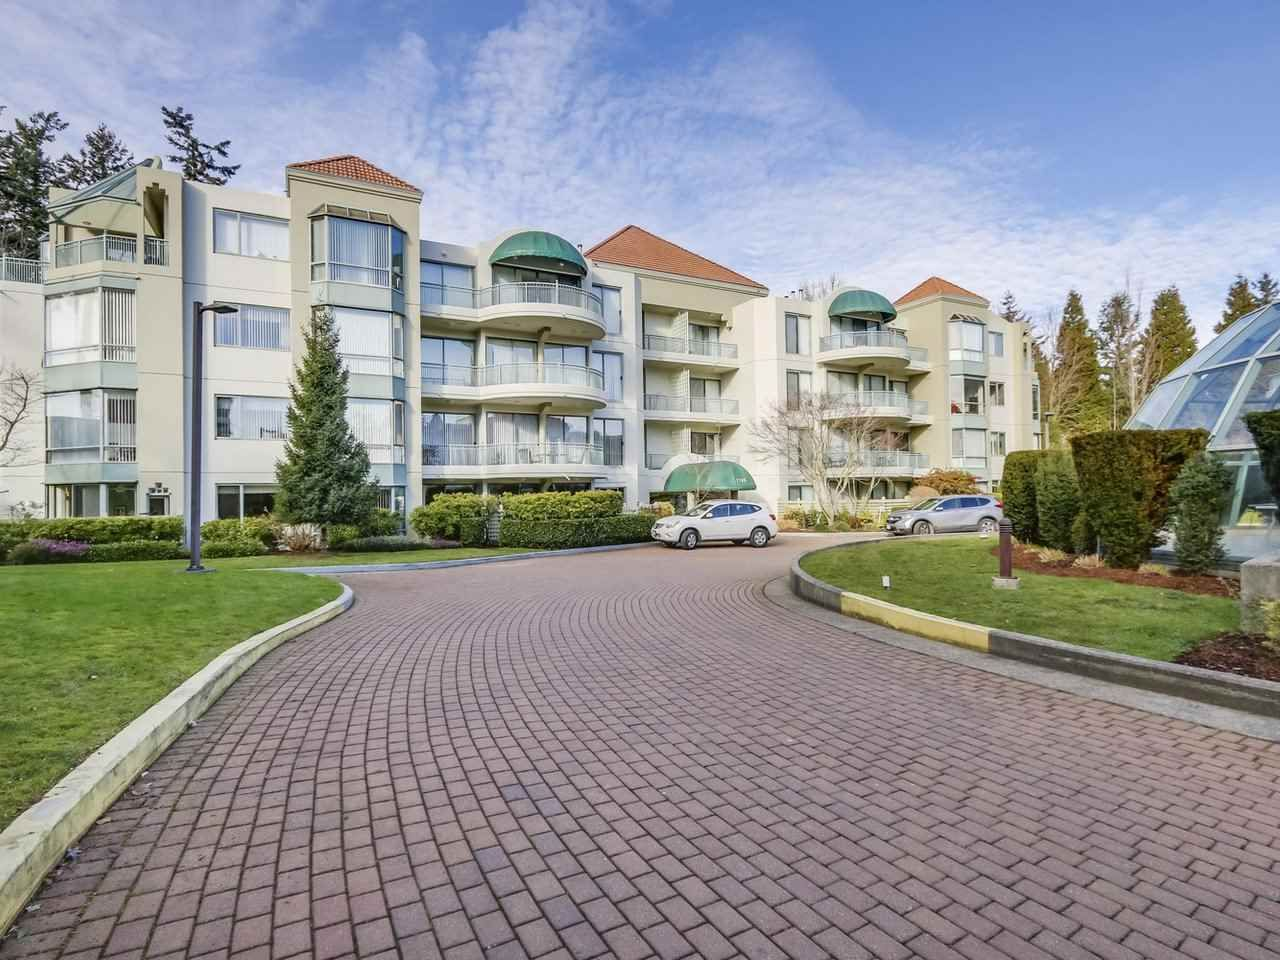 """Main Photo: 202 1745 MARTIN Drive in Surrey: Sunnyside Park Surrey Condo for sale in """"SOUTHWYND"""" (South Surrey White Rock)  : MLS®# R2334563"""